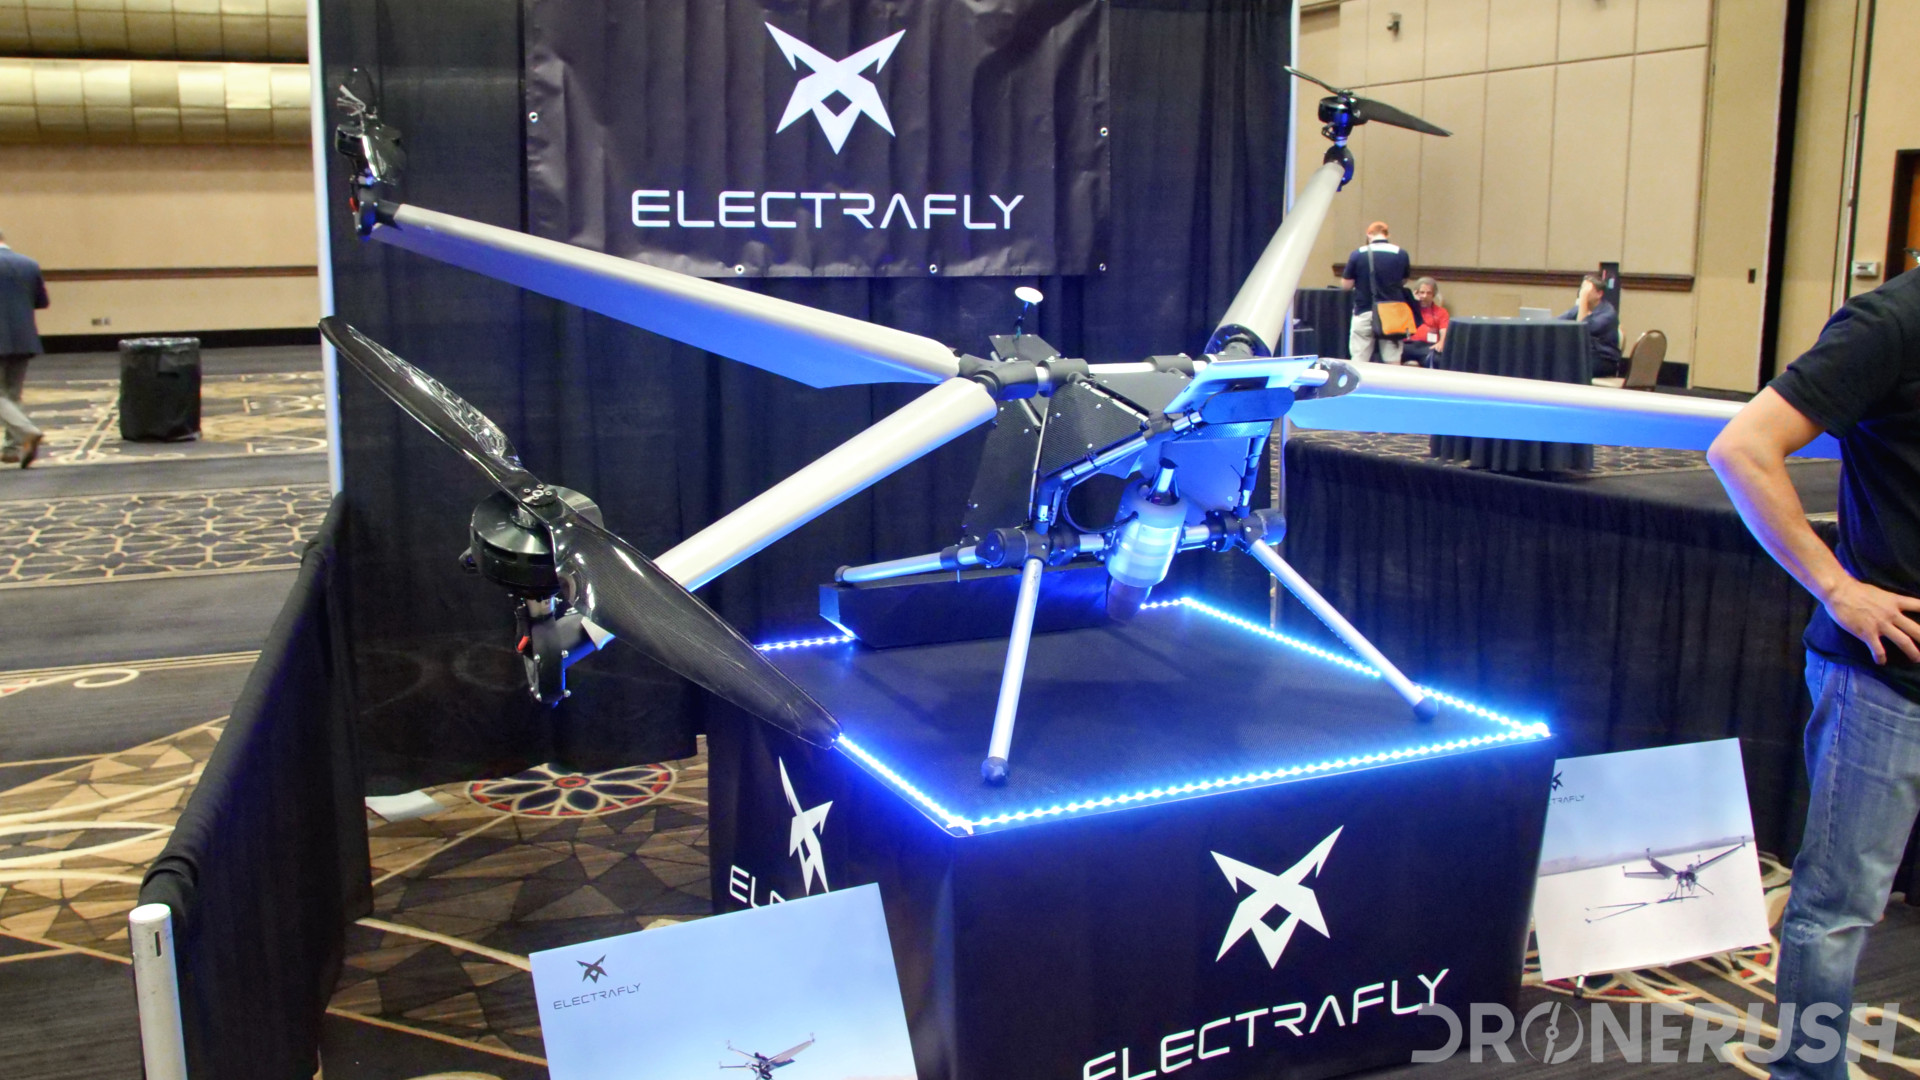 Electrafly riding drone stunt drone interdrone 2018